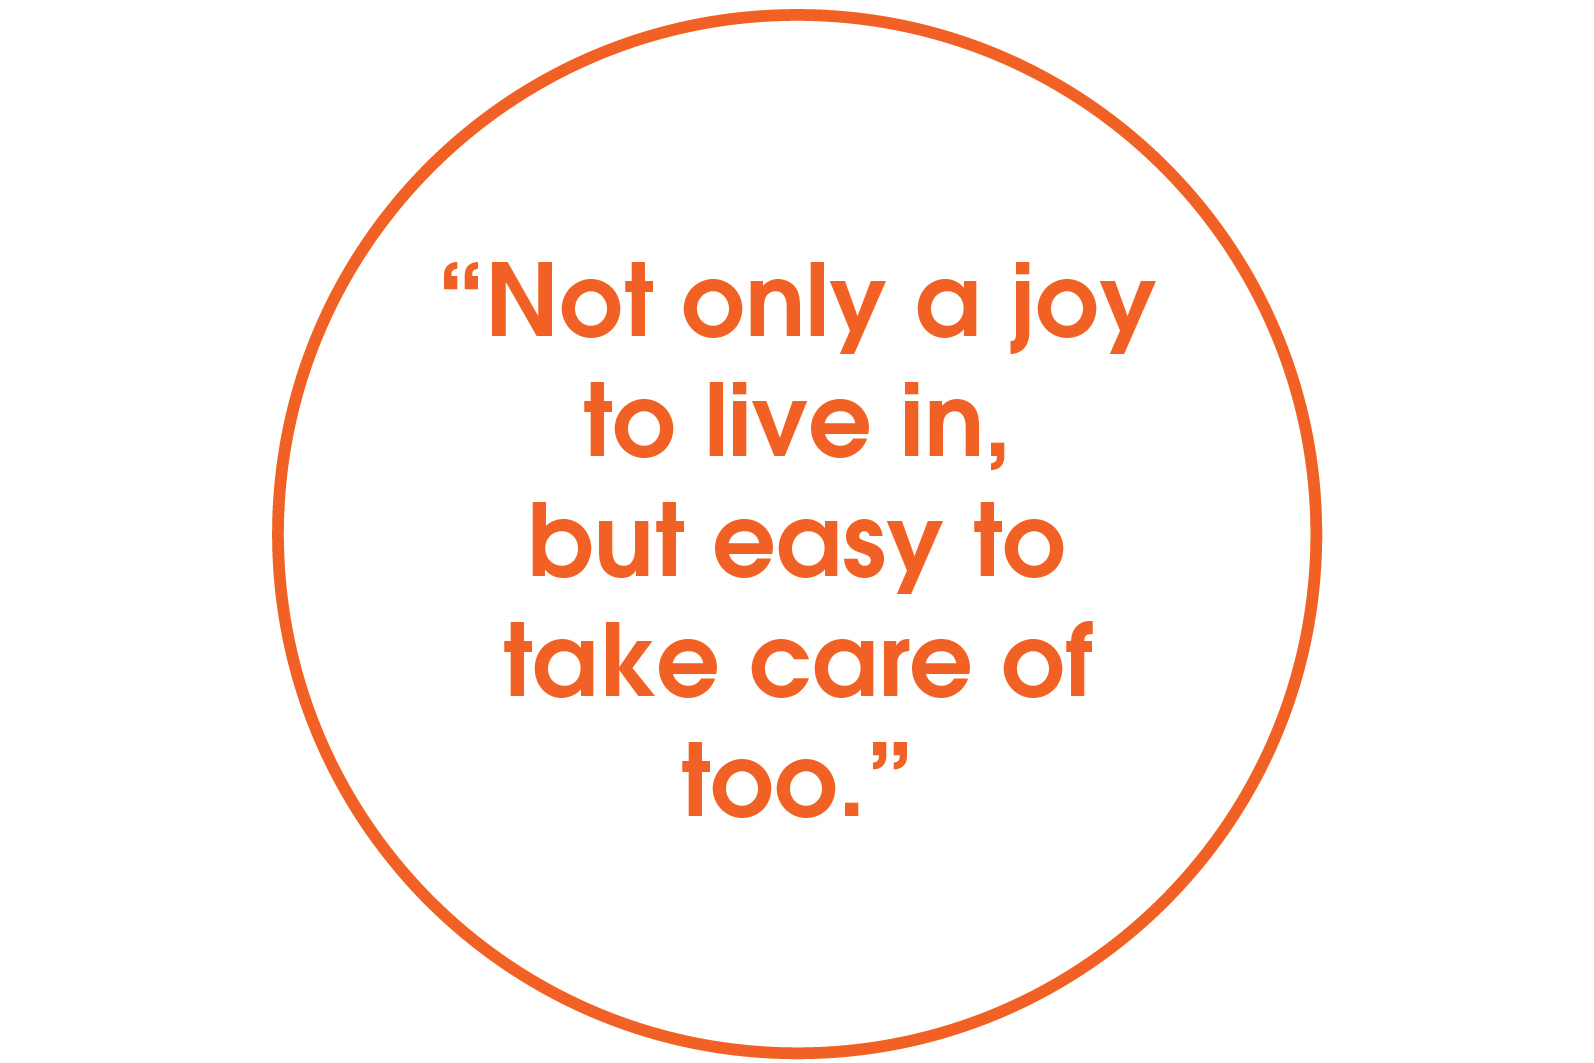 not only a joy to live in but easy to take care of too quote